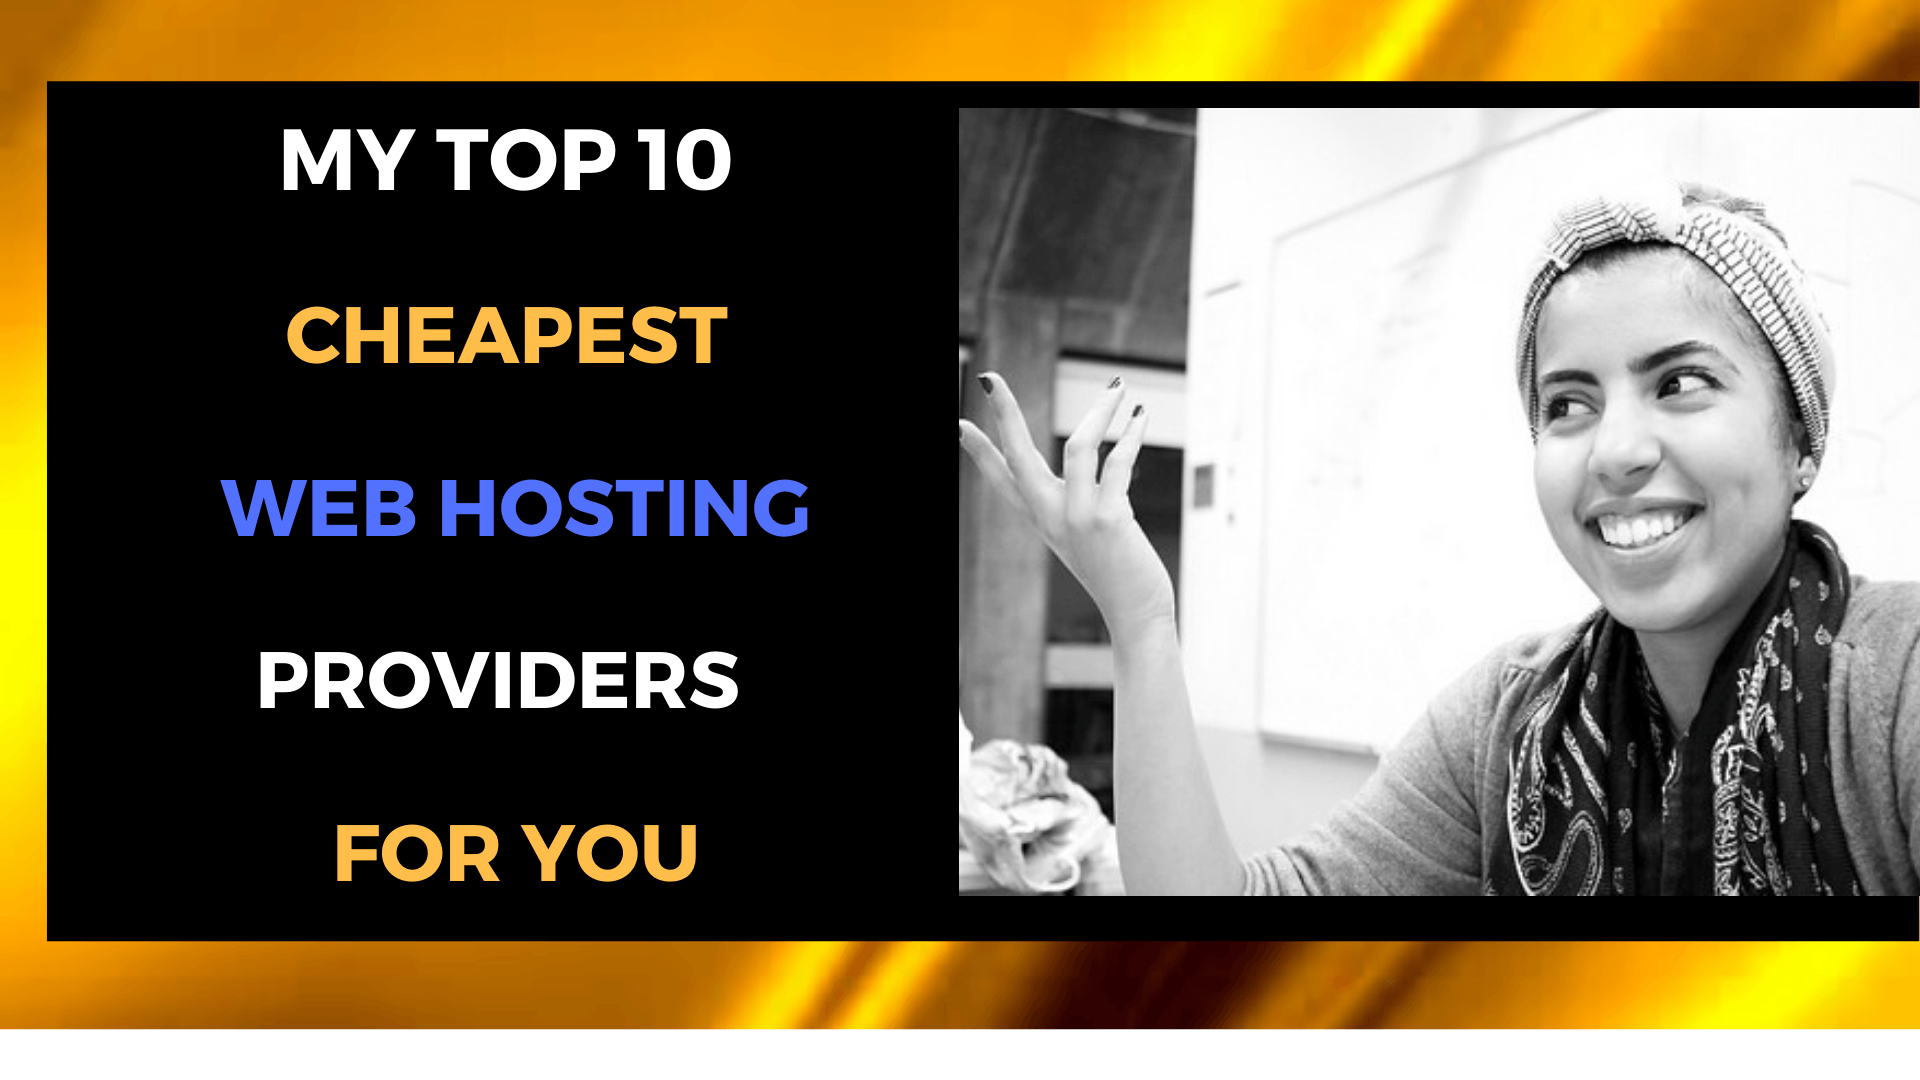 Top 10 Cheapest Web Hosting Providers